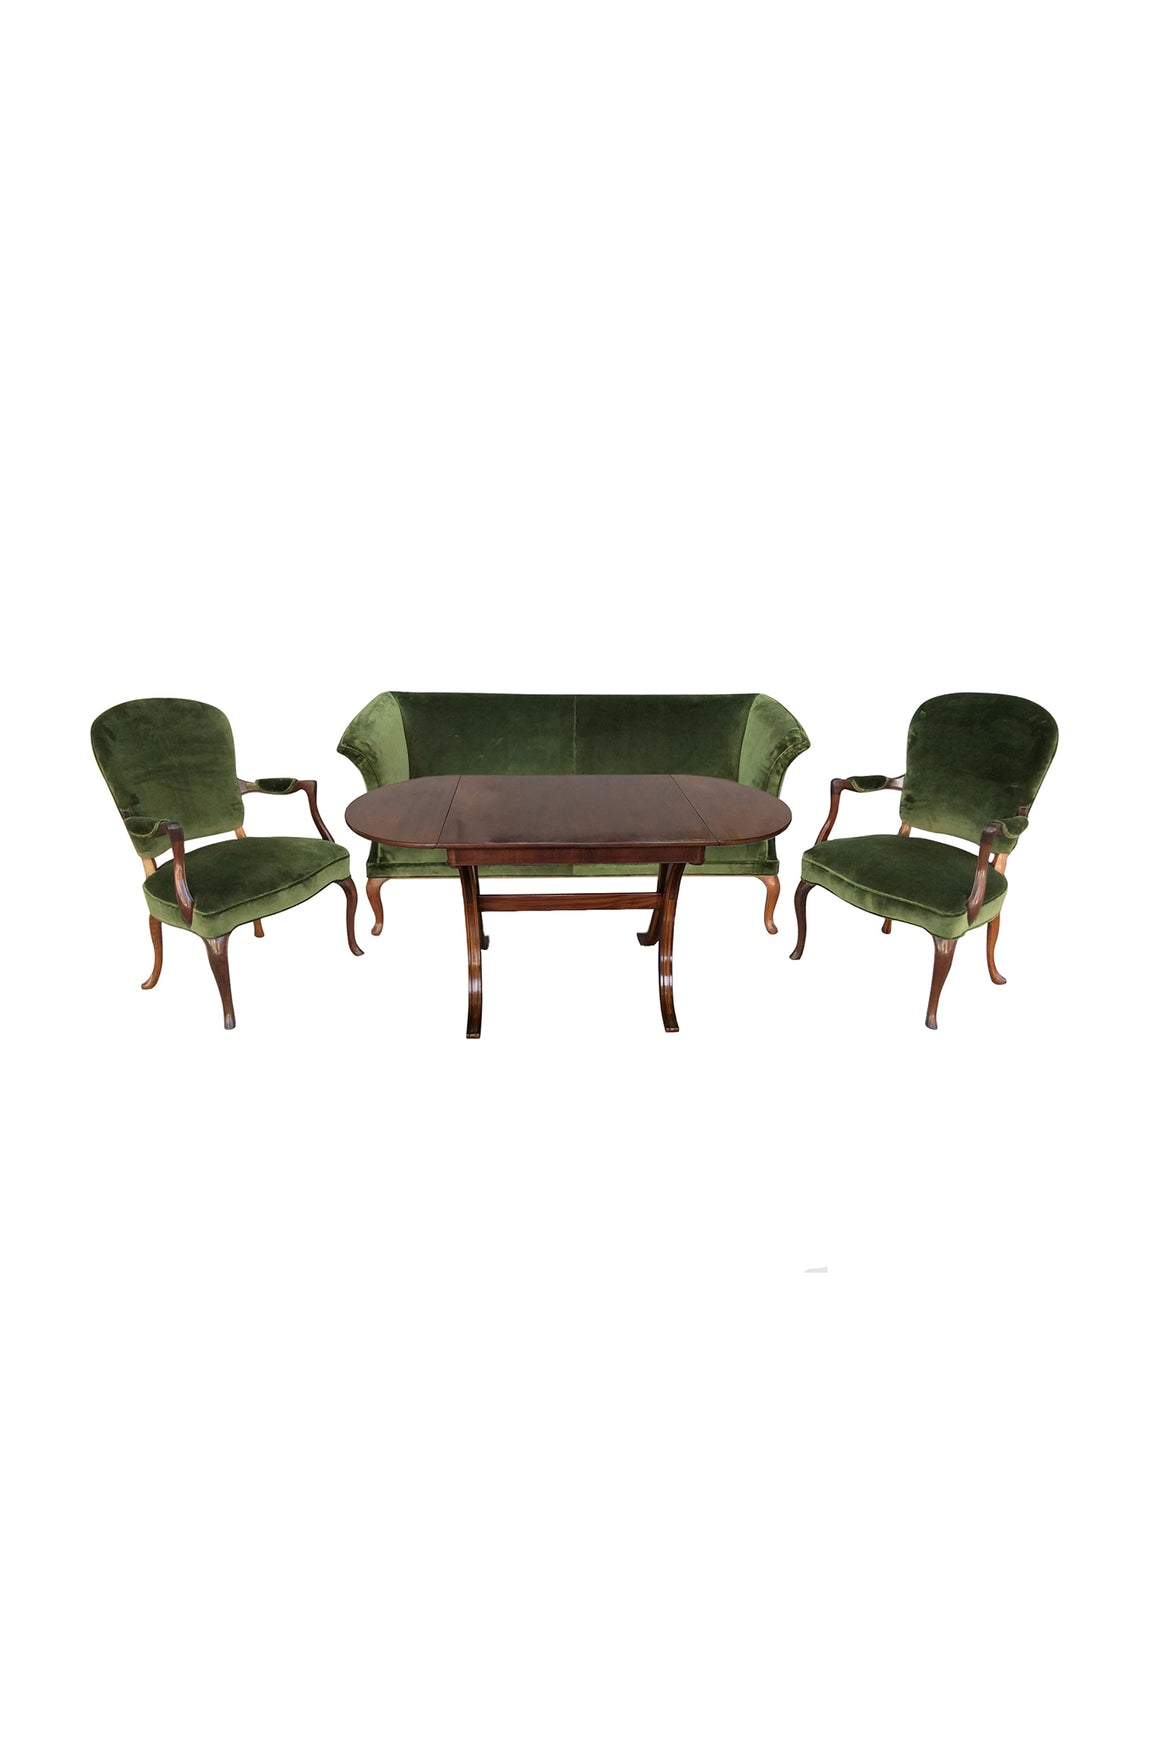 1940s Frits Henningsen Salon Suite - ON HOLD